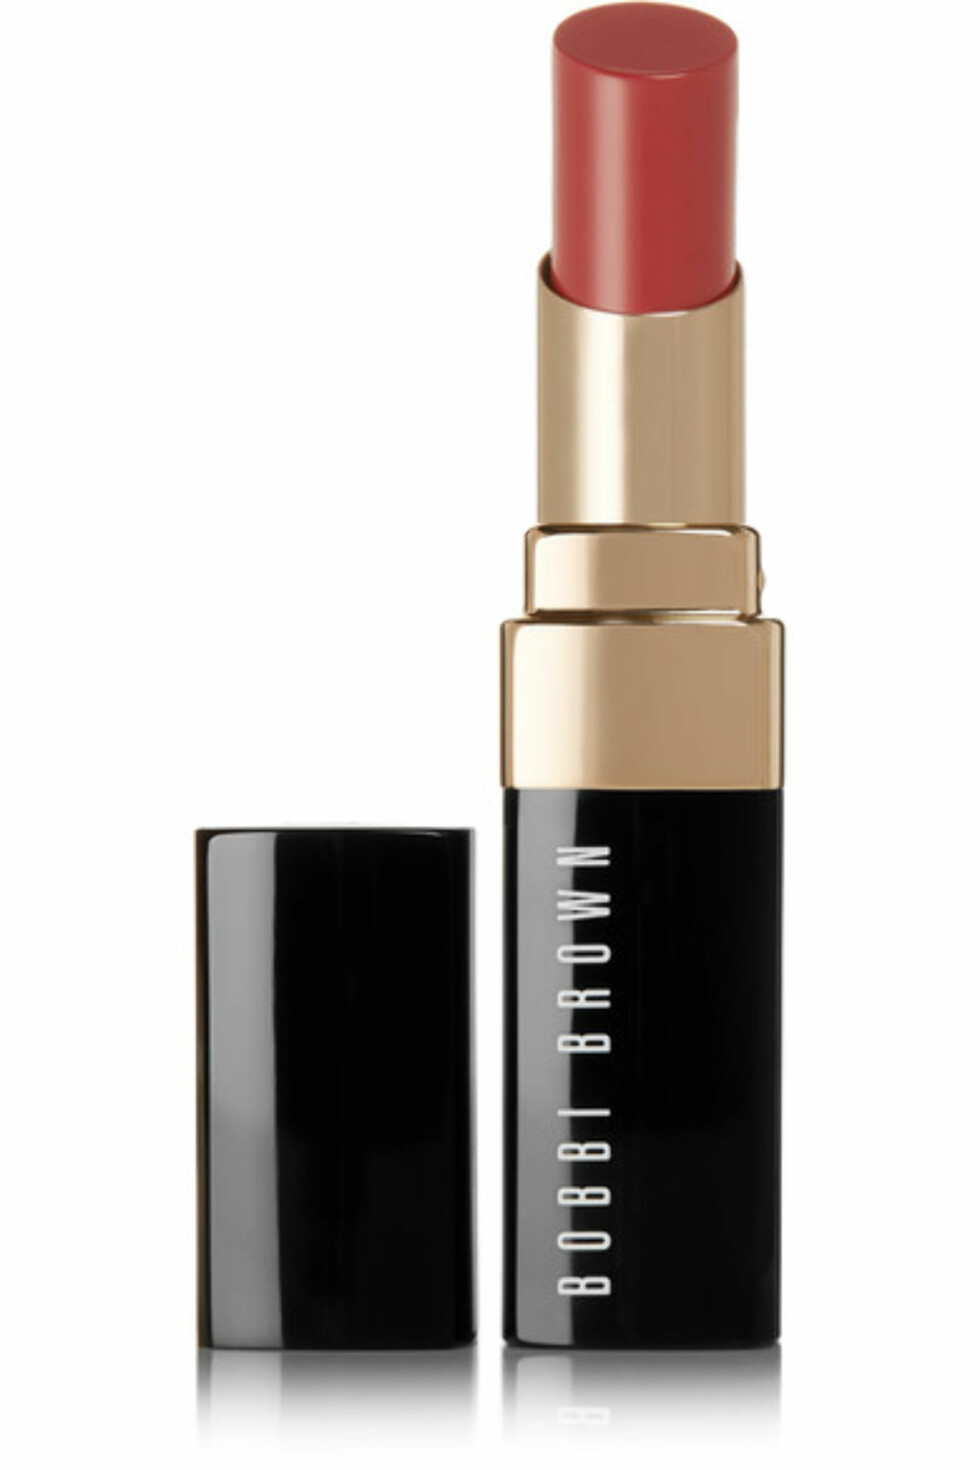 Leppestift fra Bobbi Brown |280,-| https://www.net-a-porter.com/no/en/product/1041145/bobbi_brown/nourishing-lip-color---italian-rose